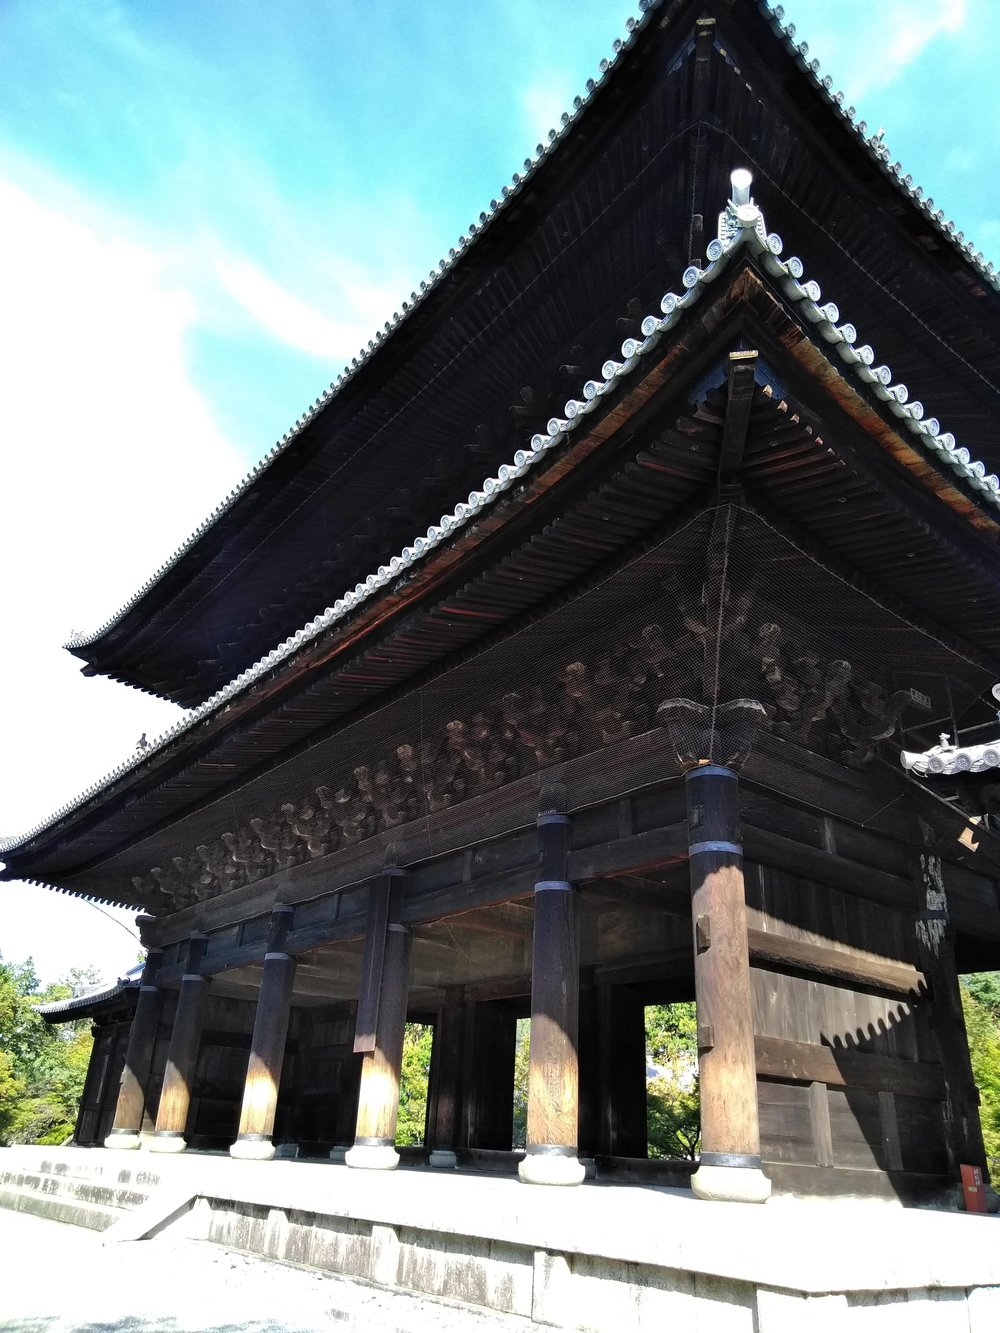 The Gate of Nanzenji